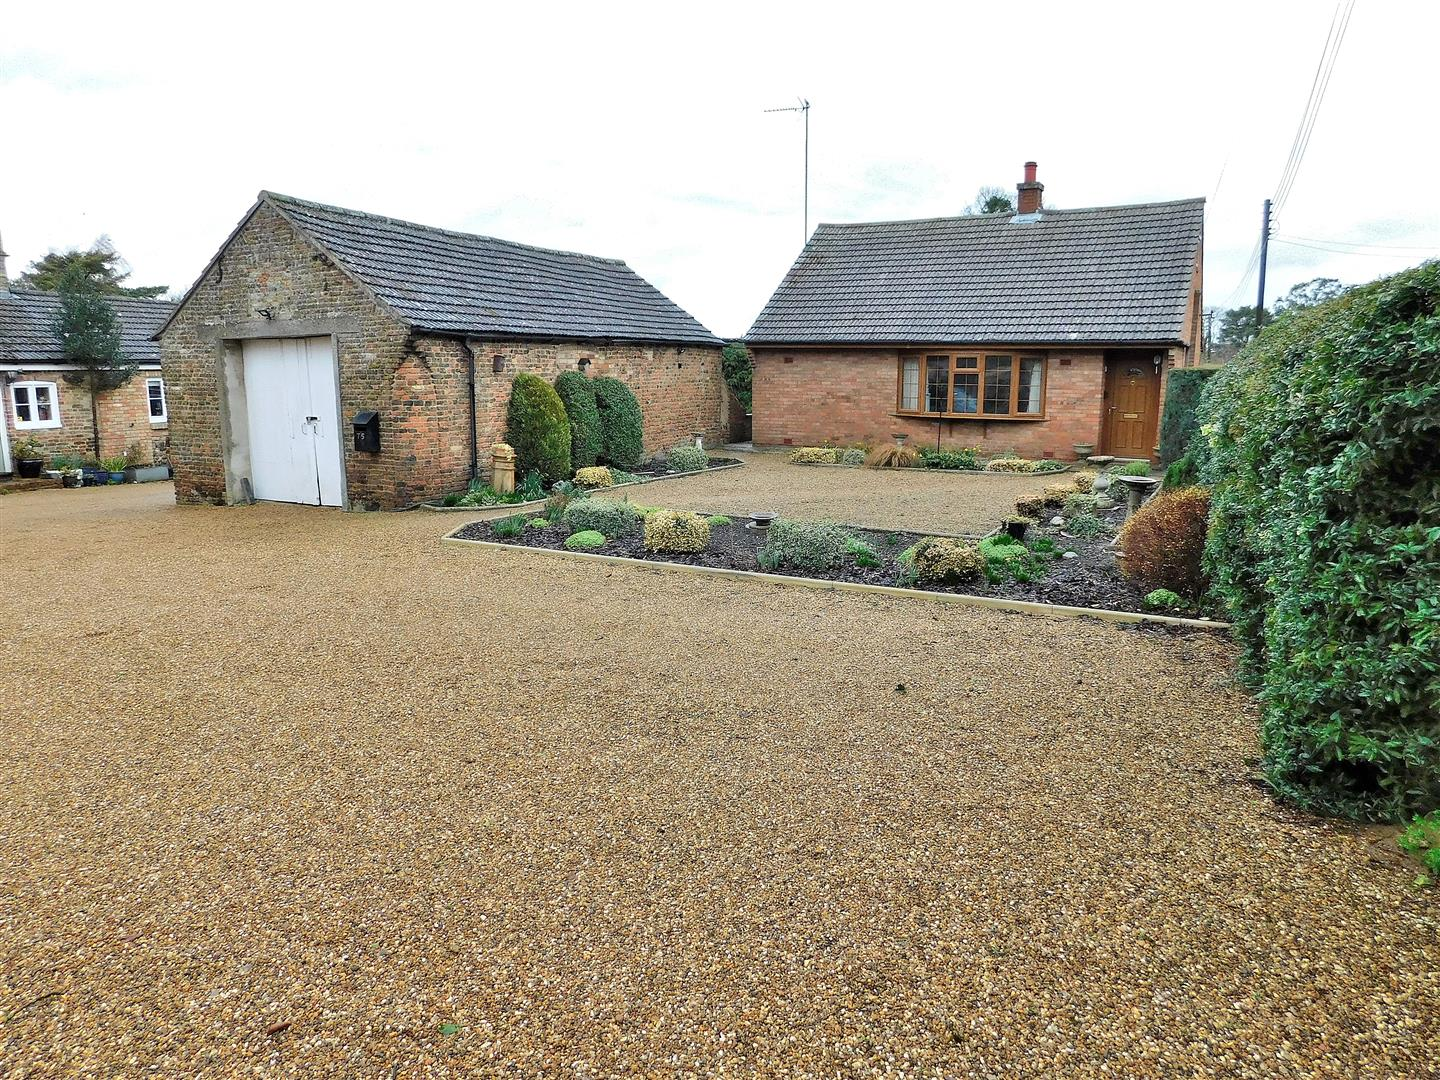 2 bed detached bungalow for sale in King's Lynn, PE34 3QG, PE34